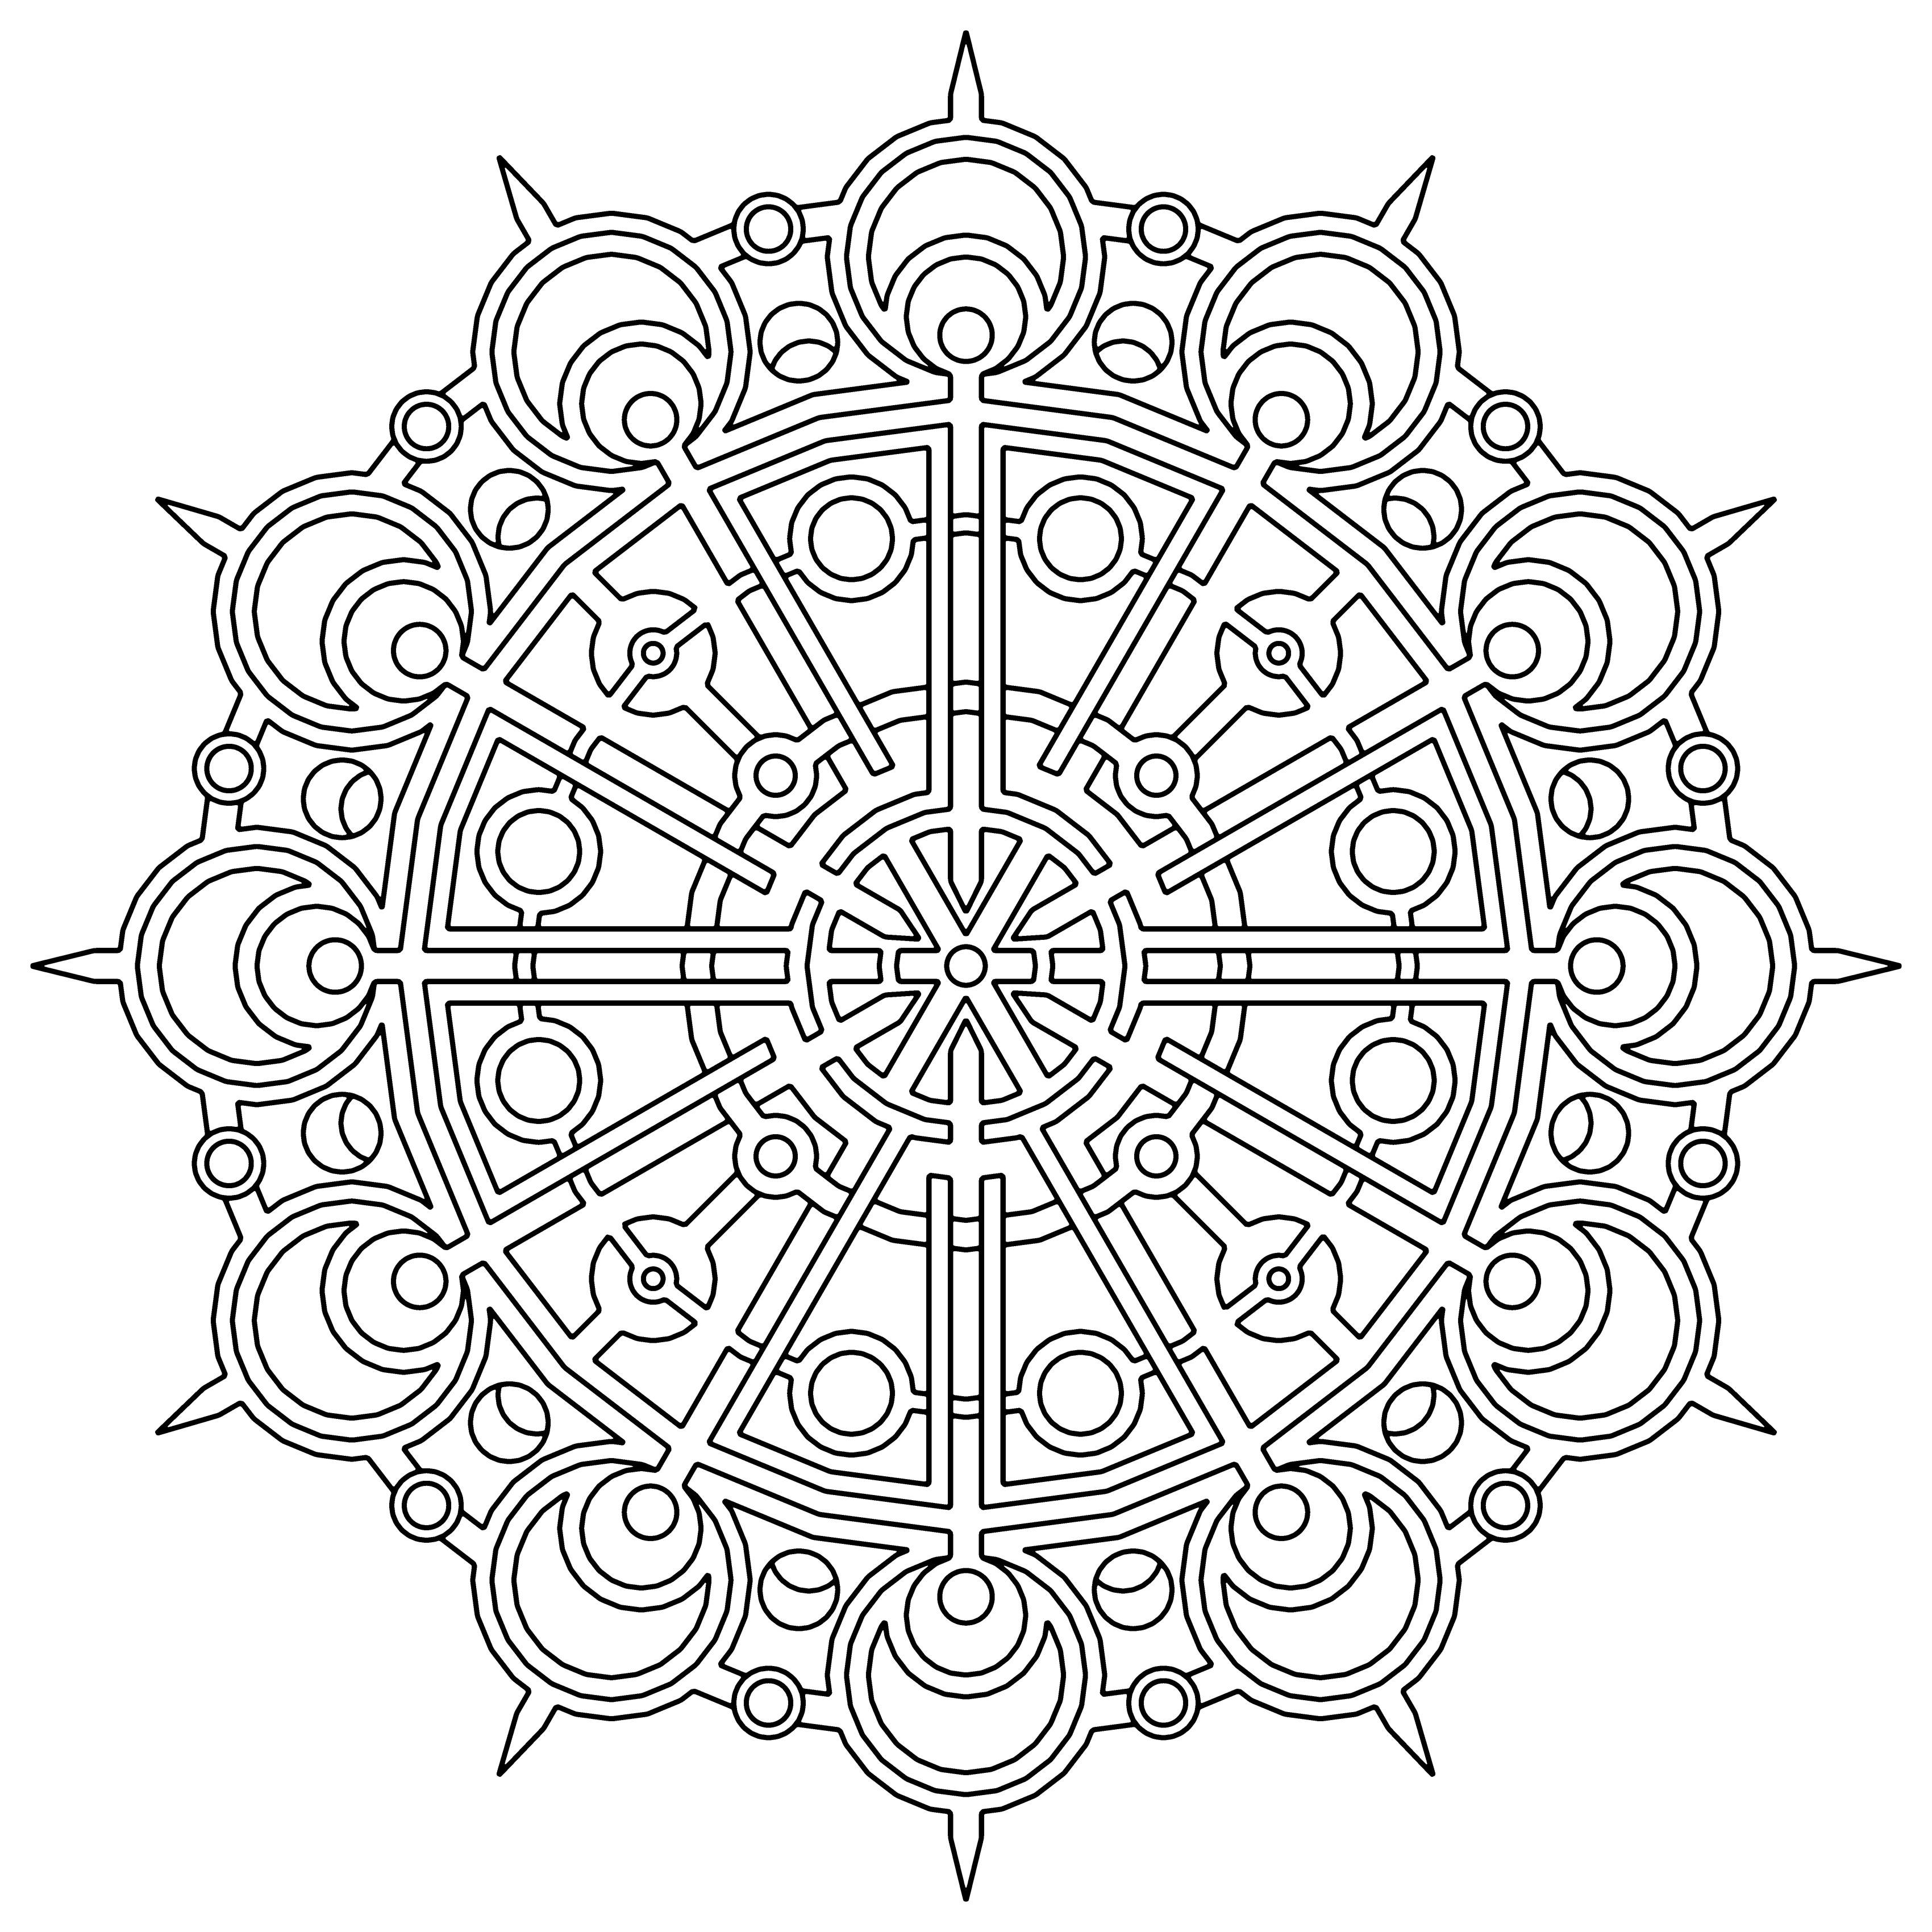 printable patterns to colour floral pattern coloring page free printable coloring pages patterns printable colour to